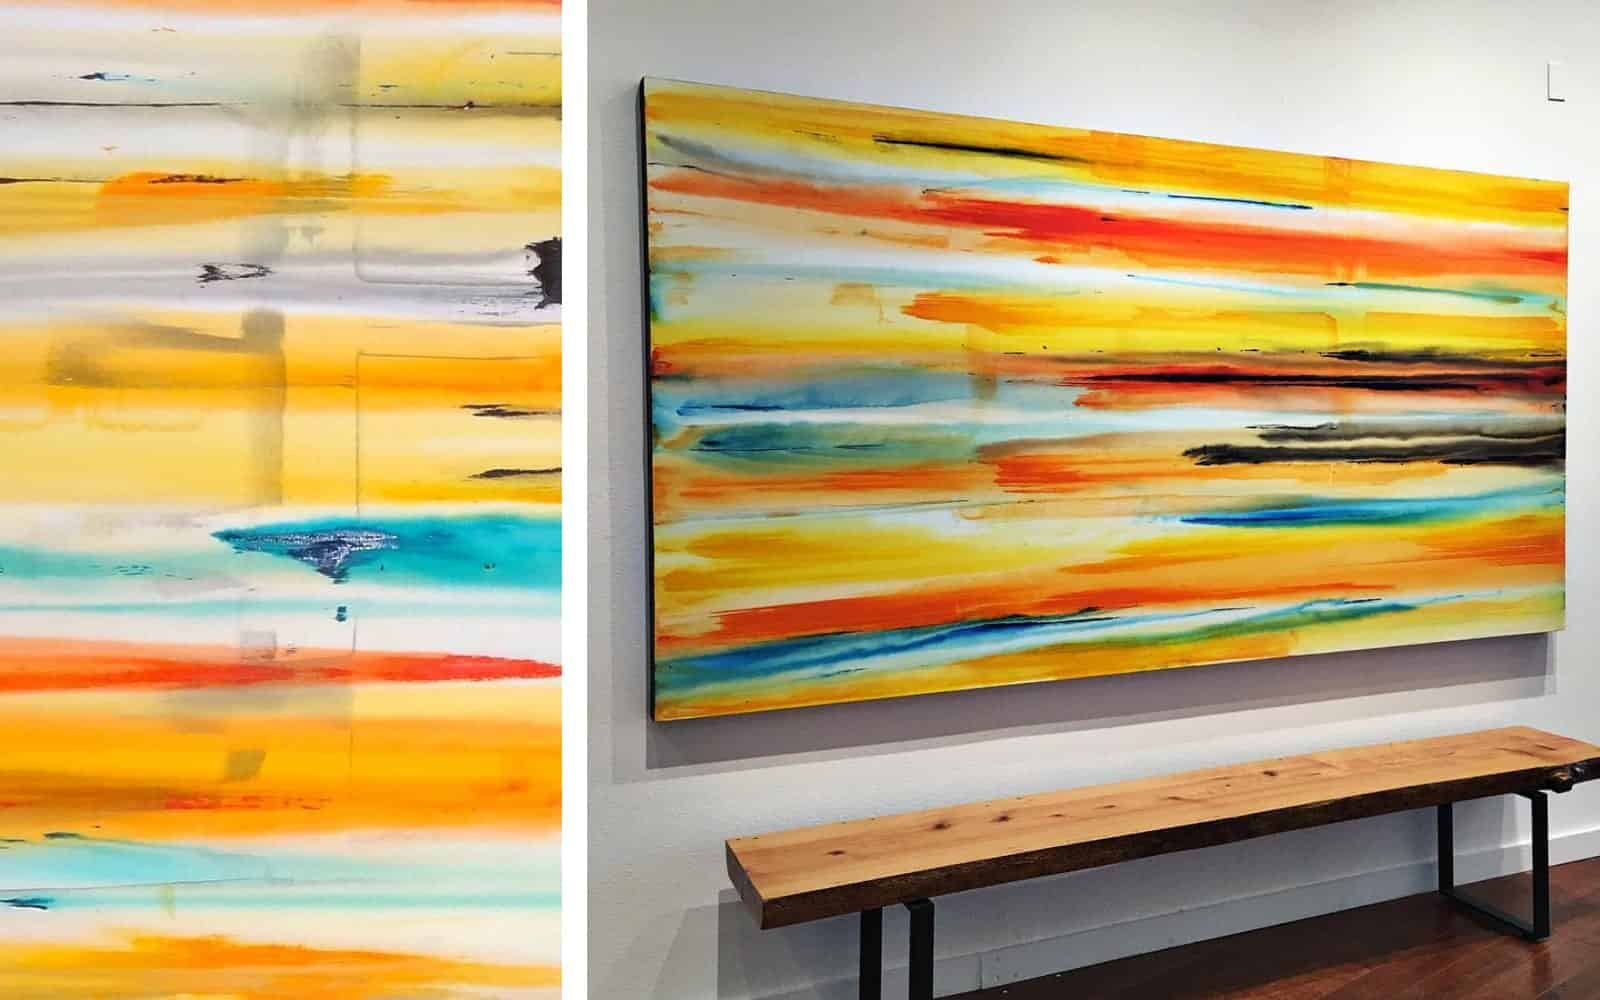 Erik Skoldberg Contemporary Painting - Vibrant & Energetic Artwork